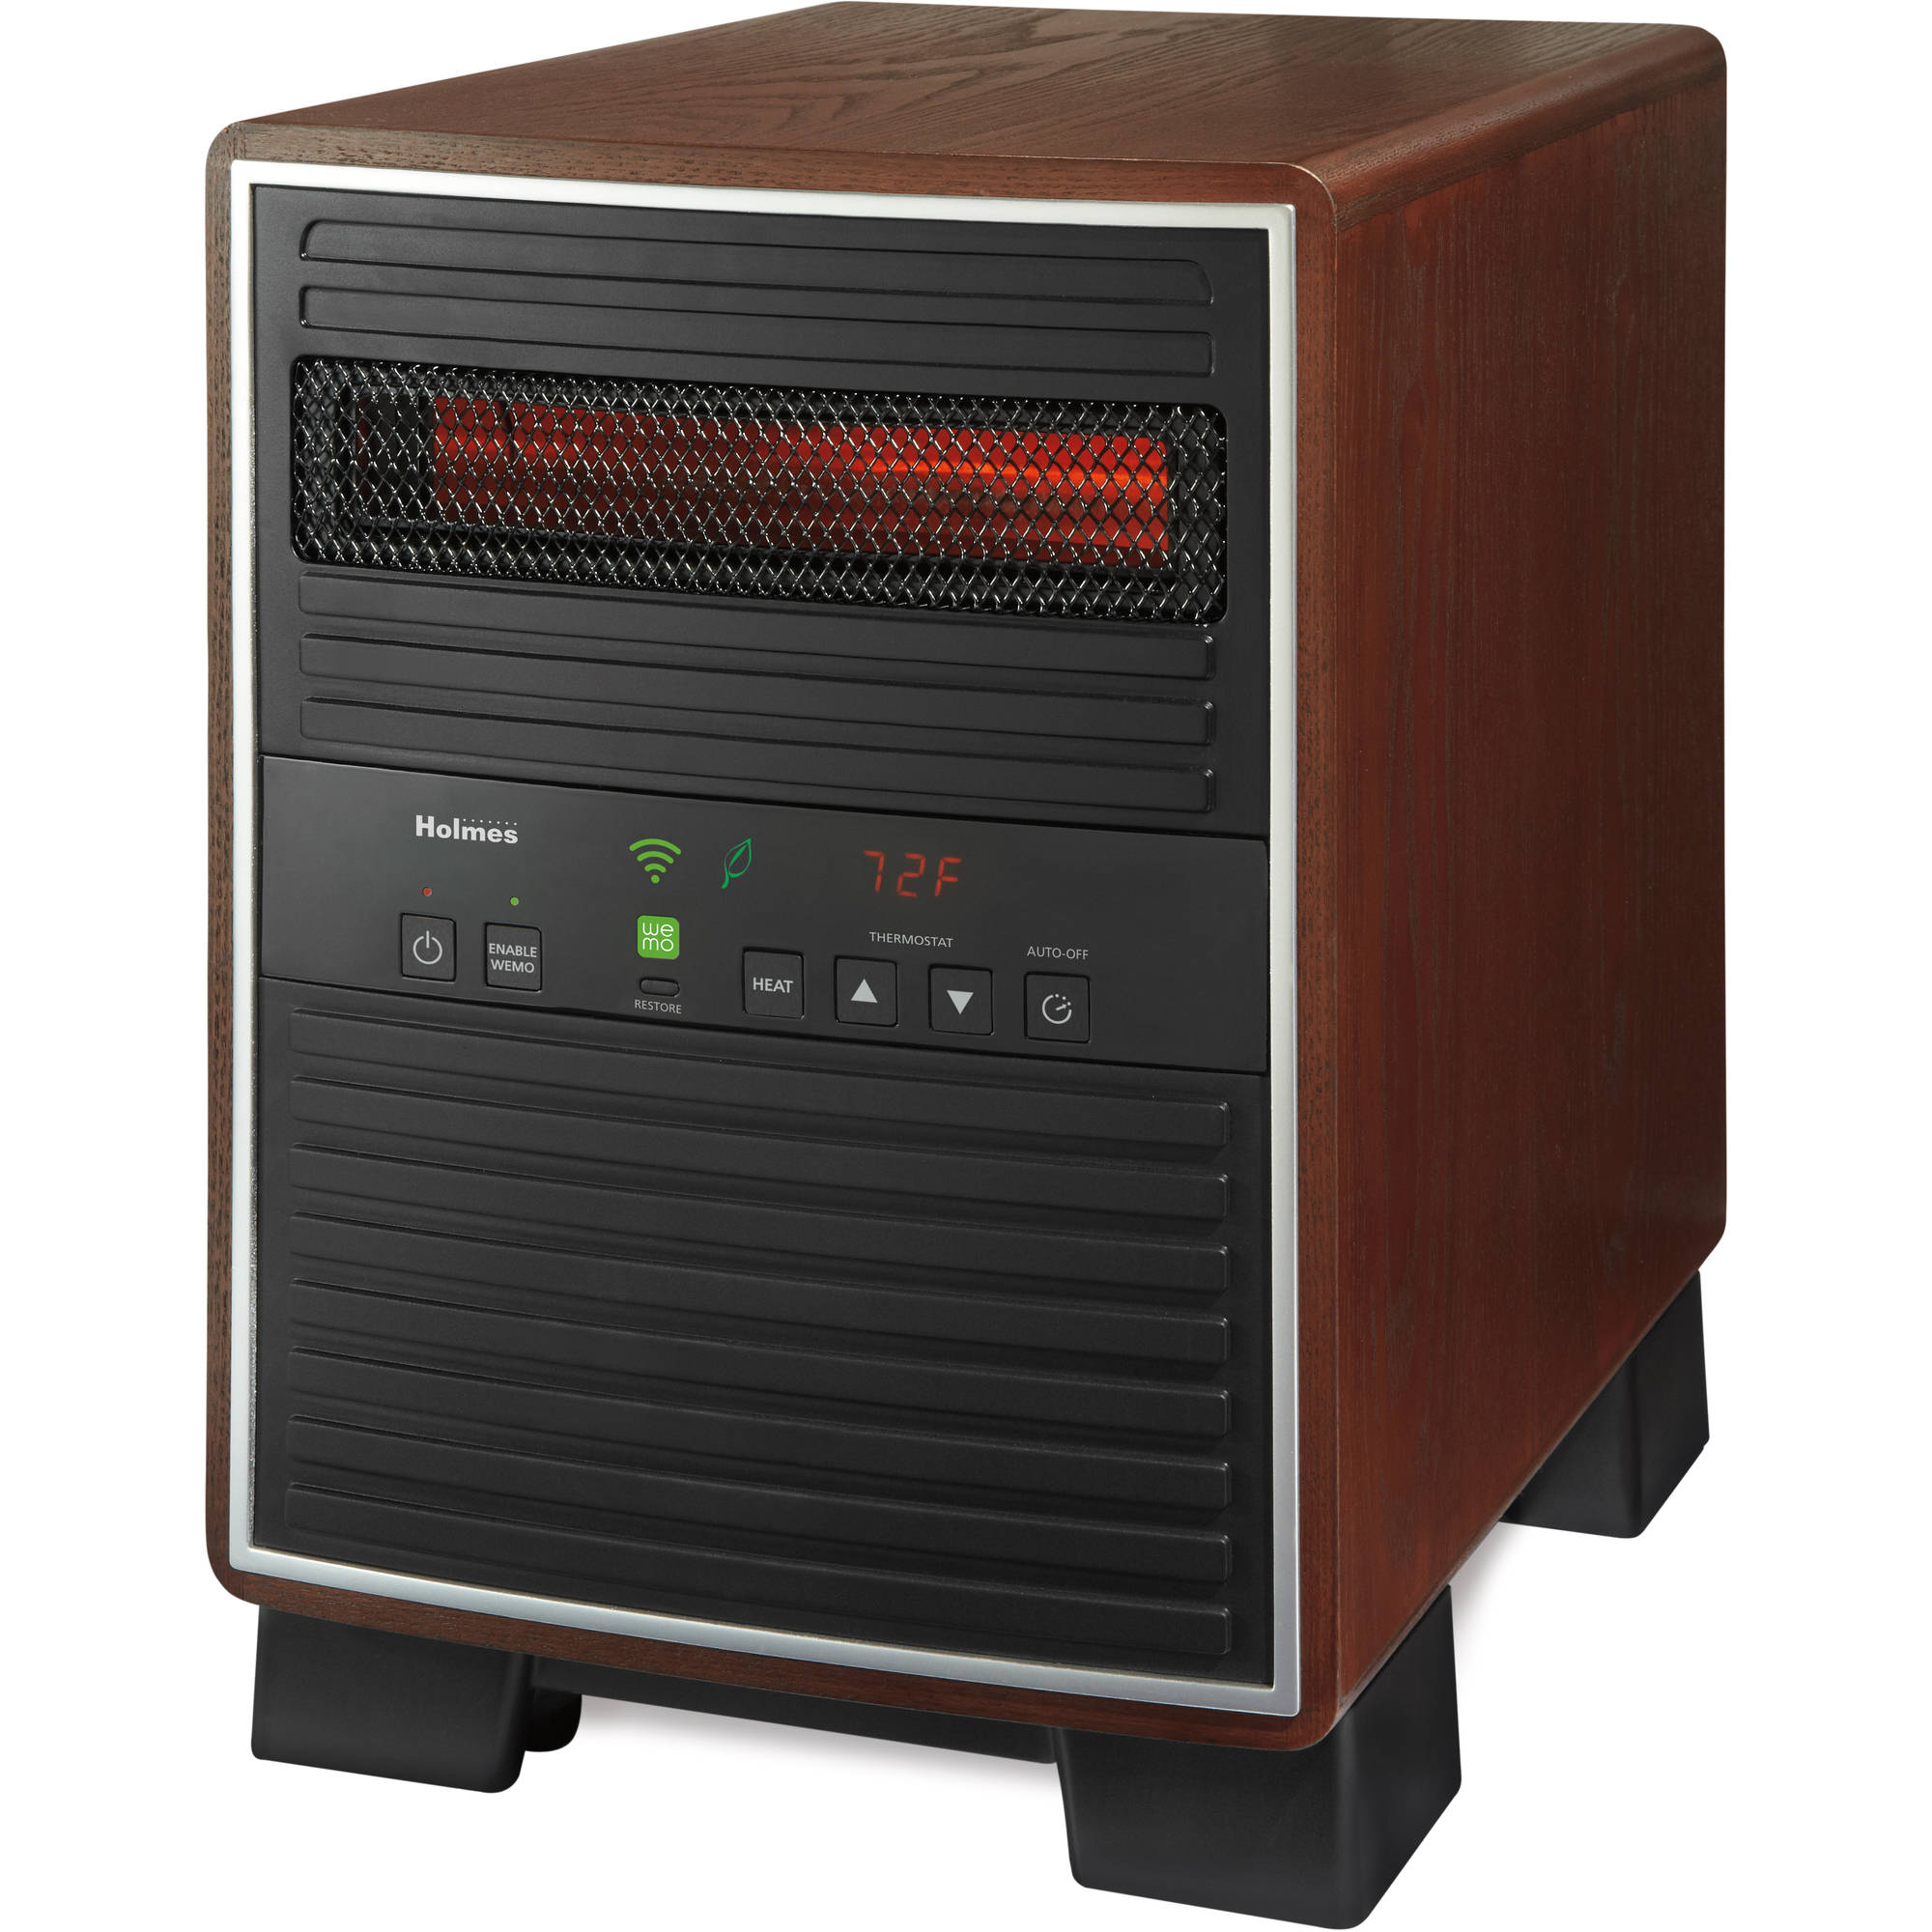 Holmes Large Console Smart Heater enabled by WeMo, HRH7404WE-NM